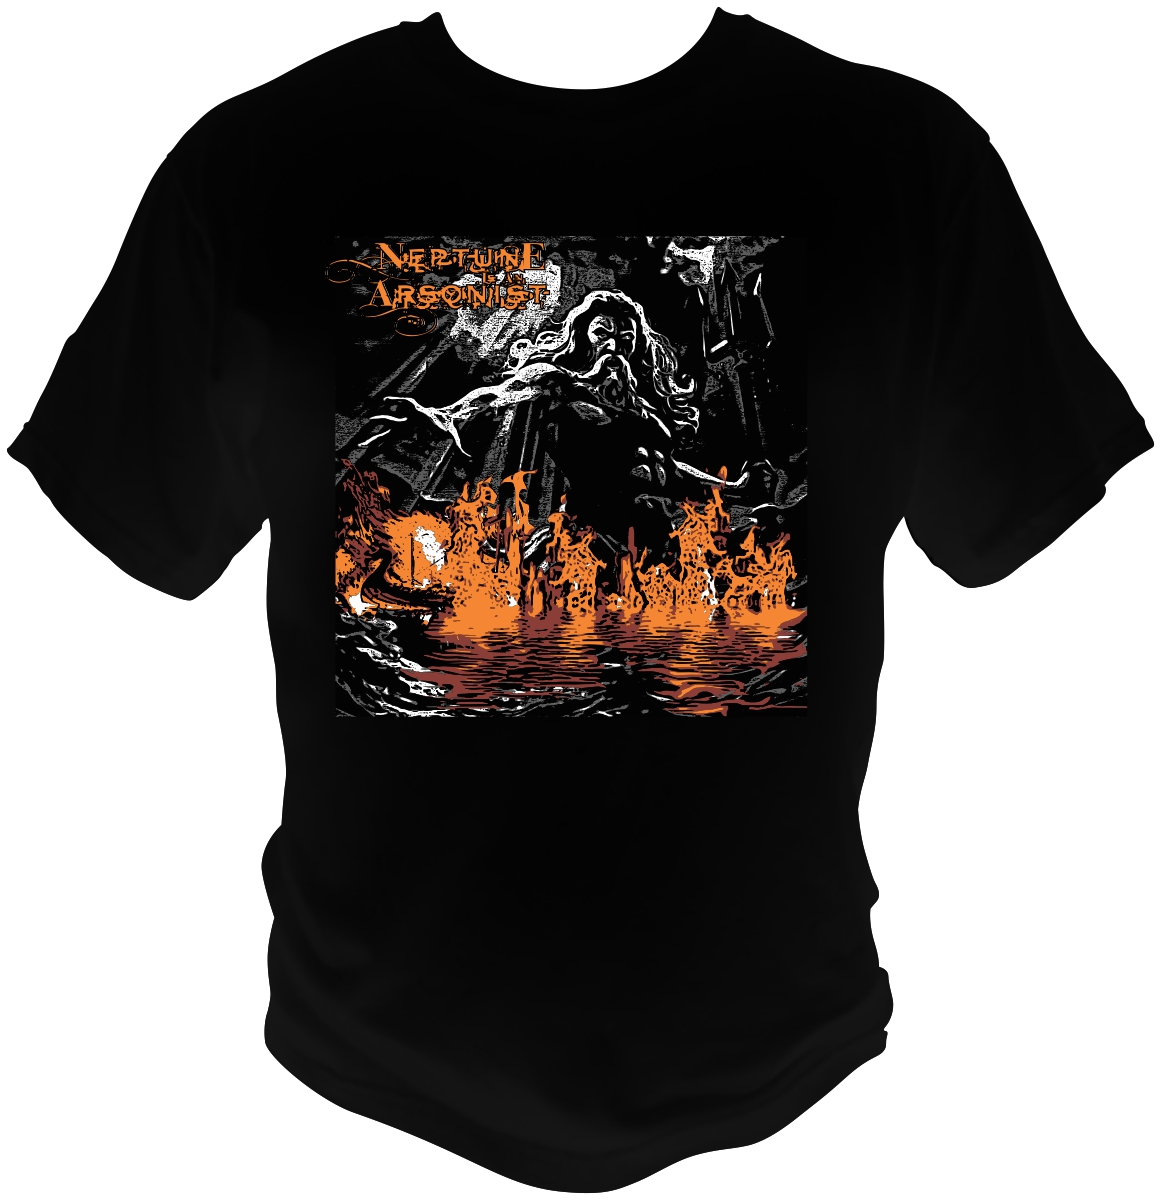 T shirt design for neptune is an arsonist by bacujkov for Dc t shirt design